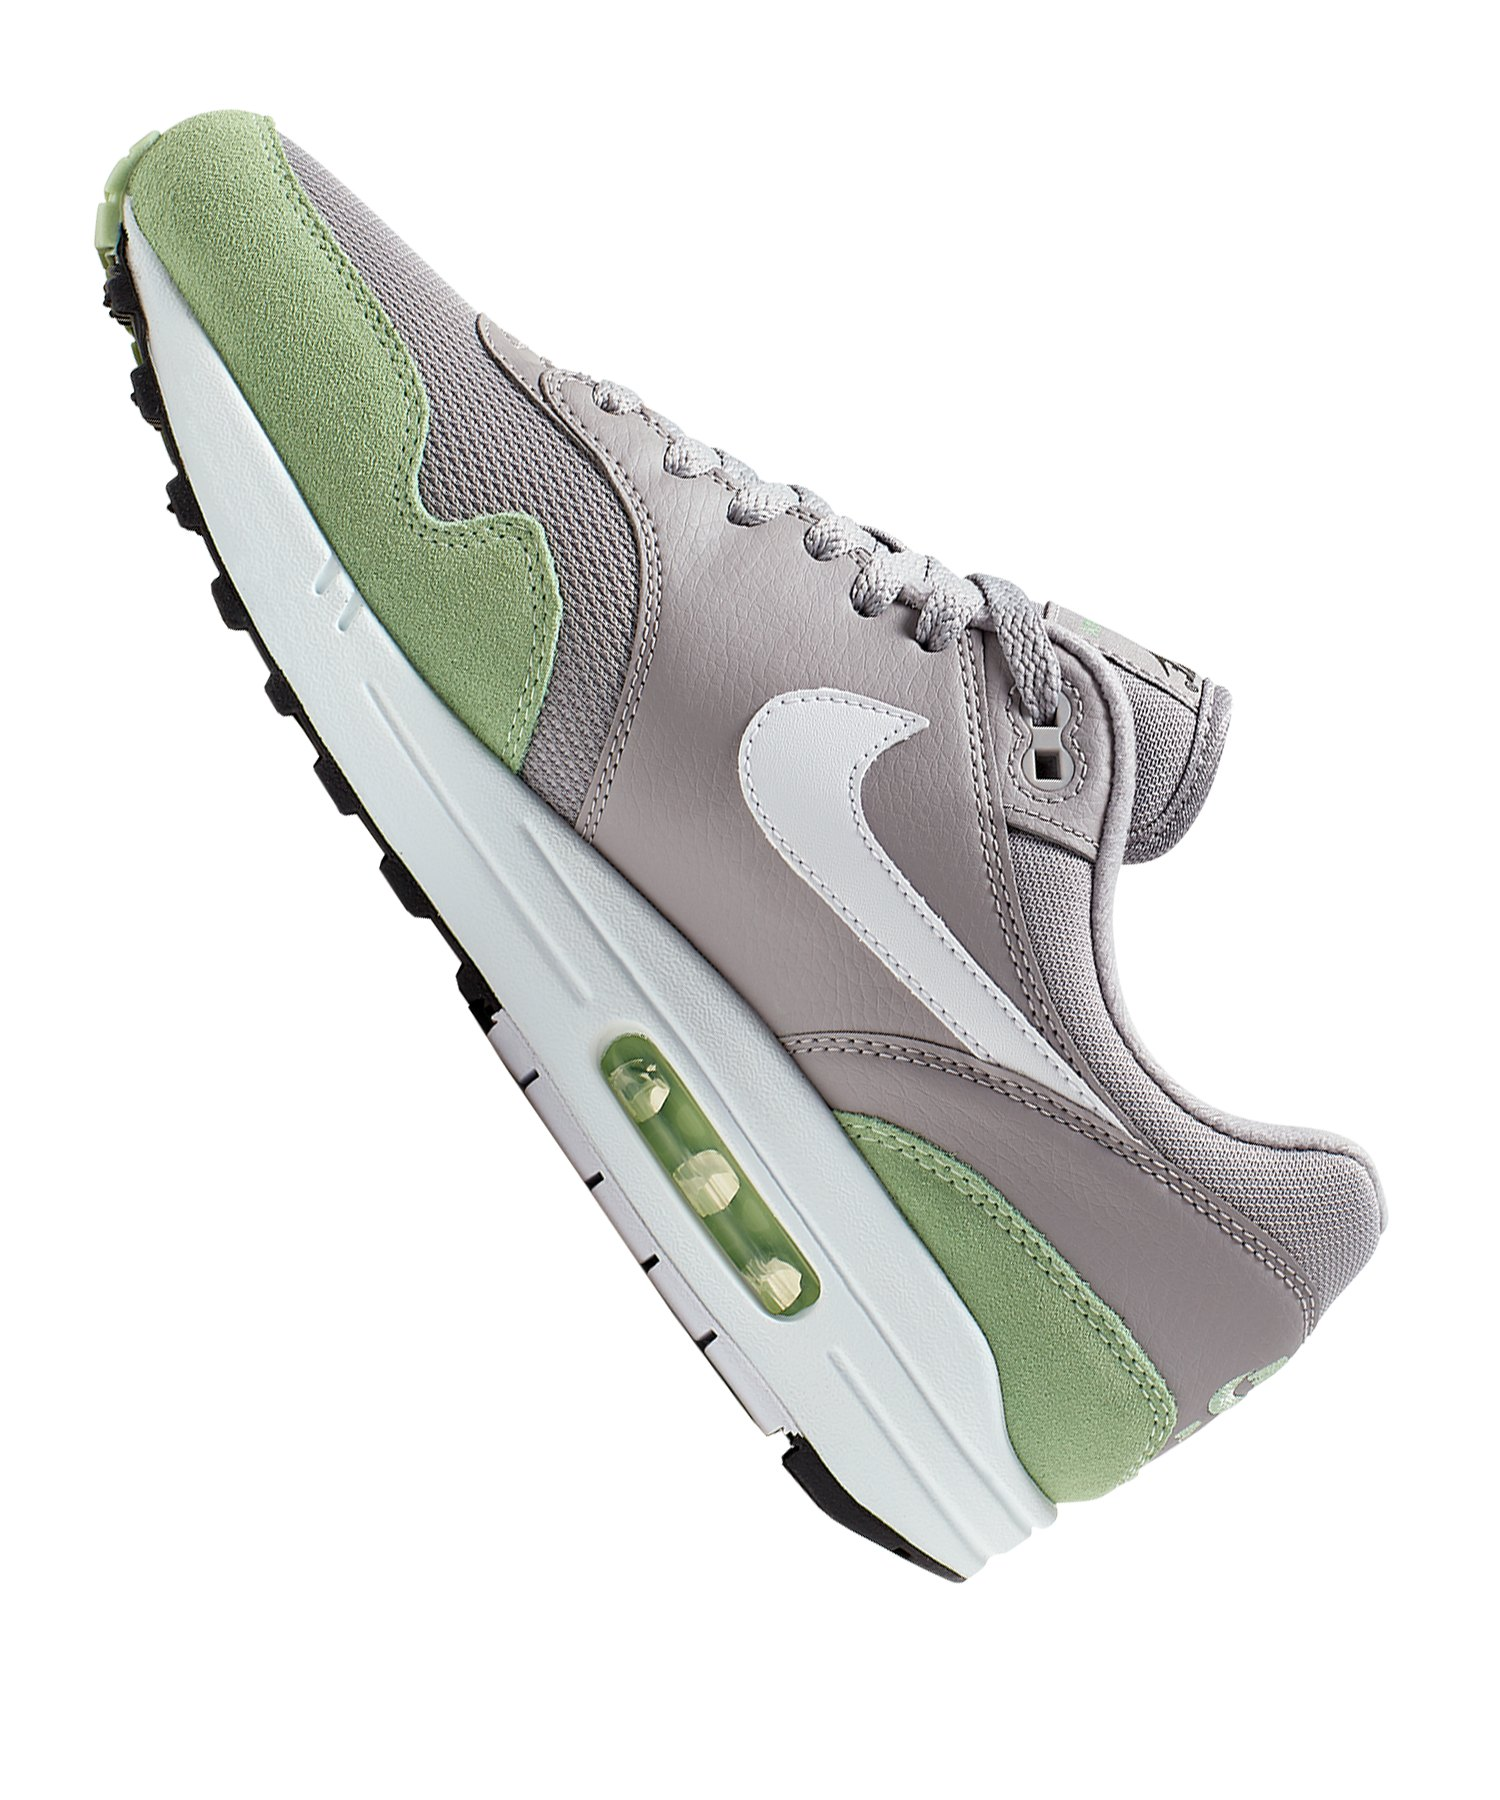 innovative design 856d3 a014b ... Nike Air Max 1 Sneaker Grau Grün F015 - Grau ...